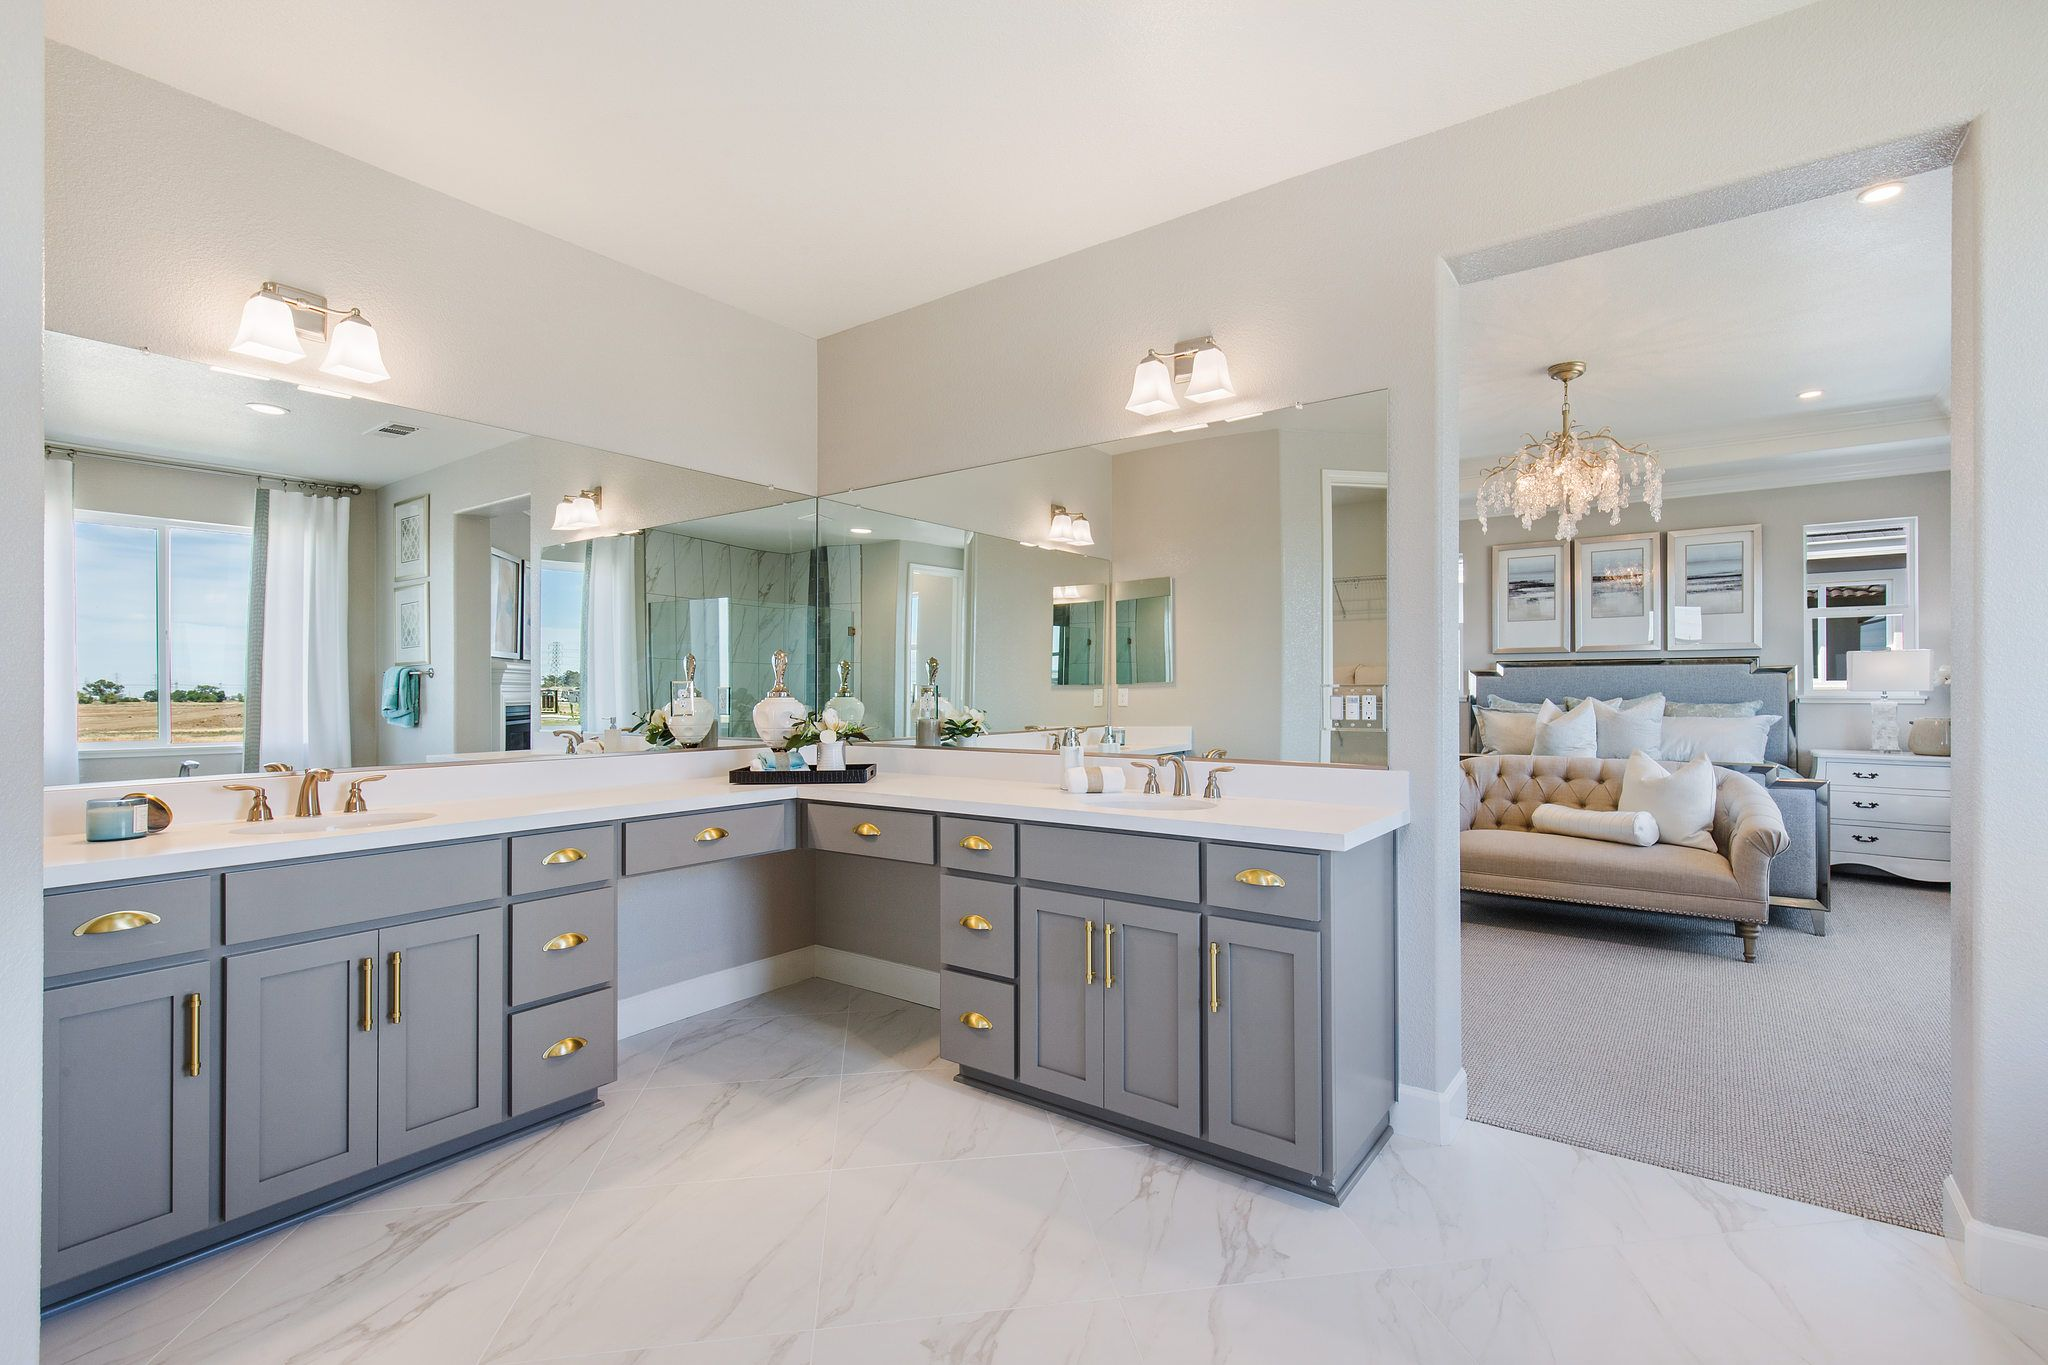 Kitchen featured in the Cabral By Seeno Homes in Vallejo-Napa, CA